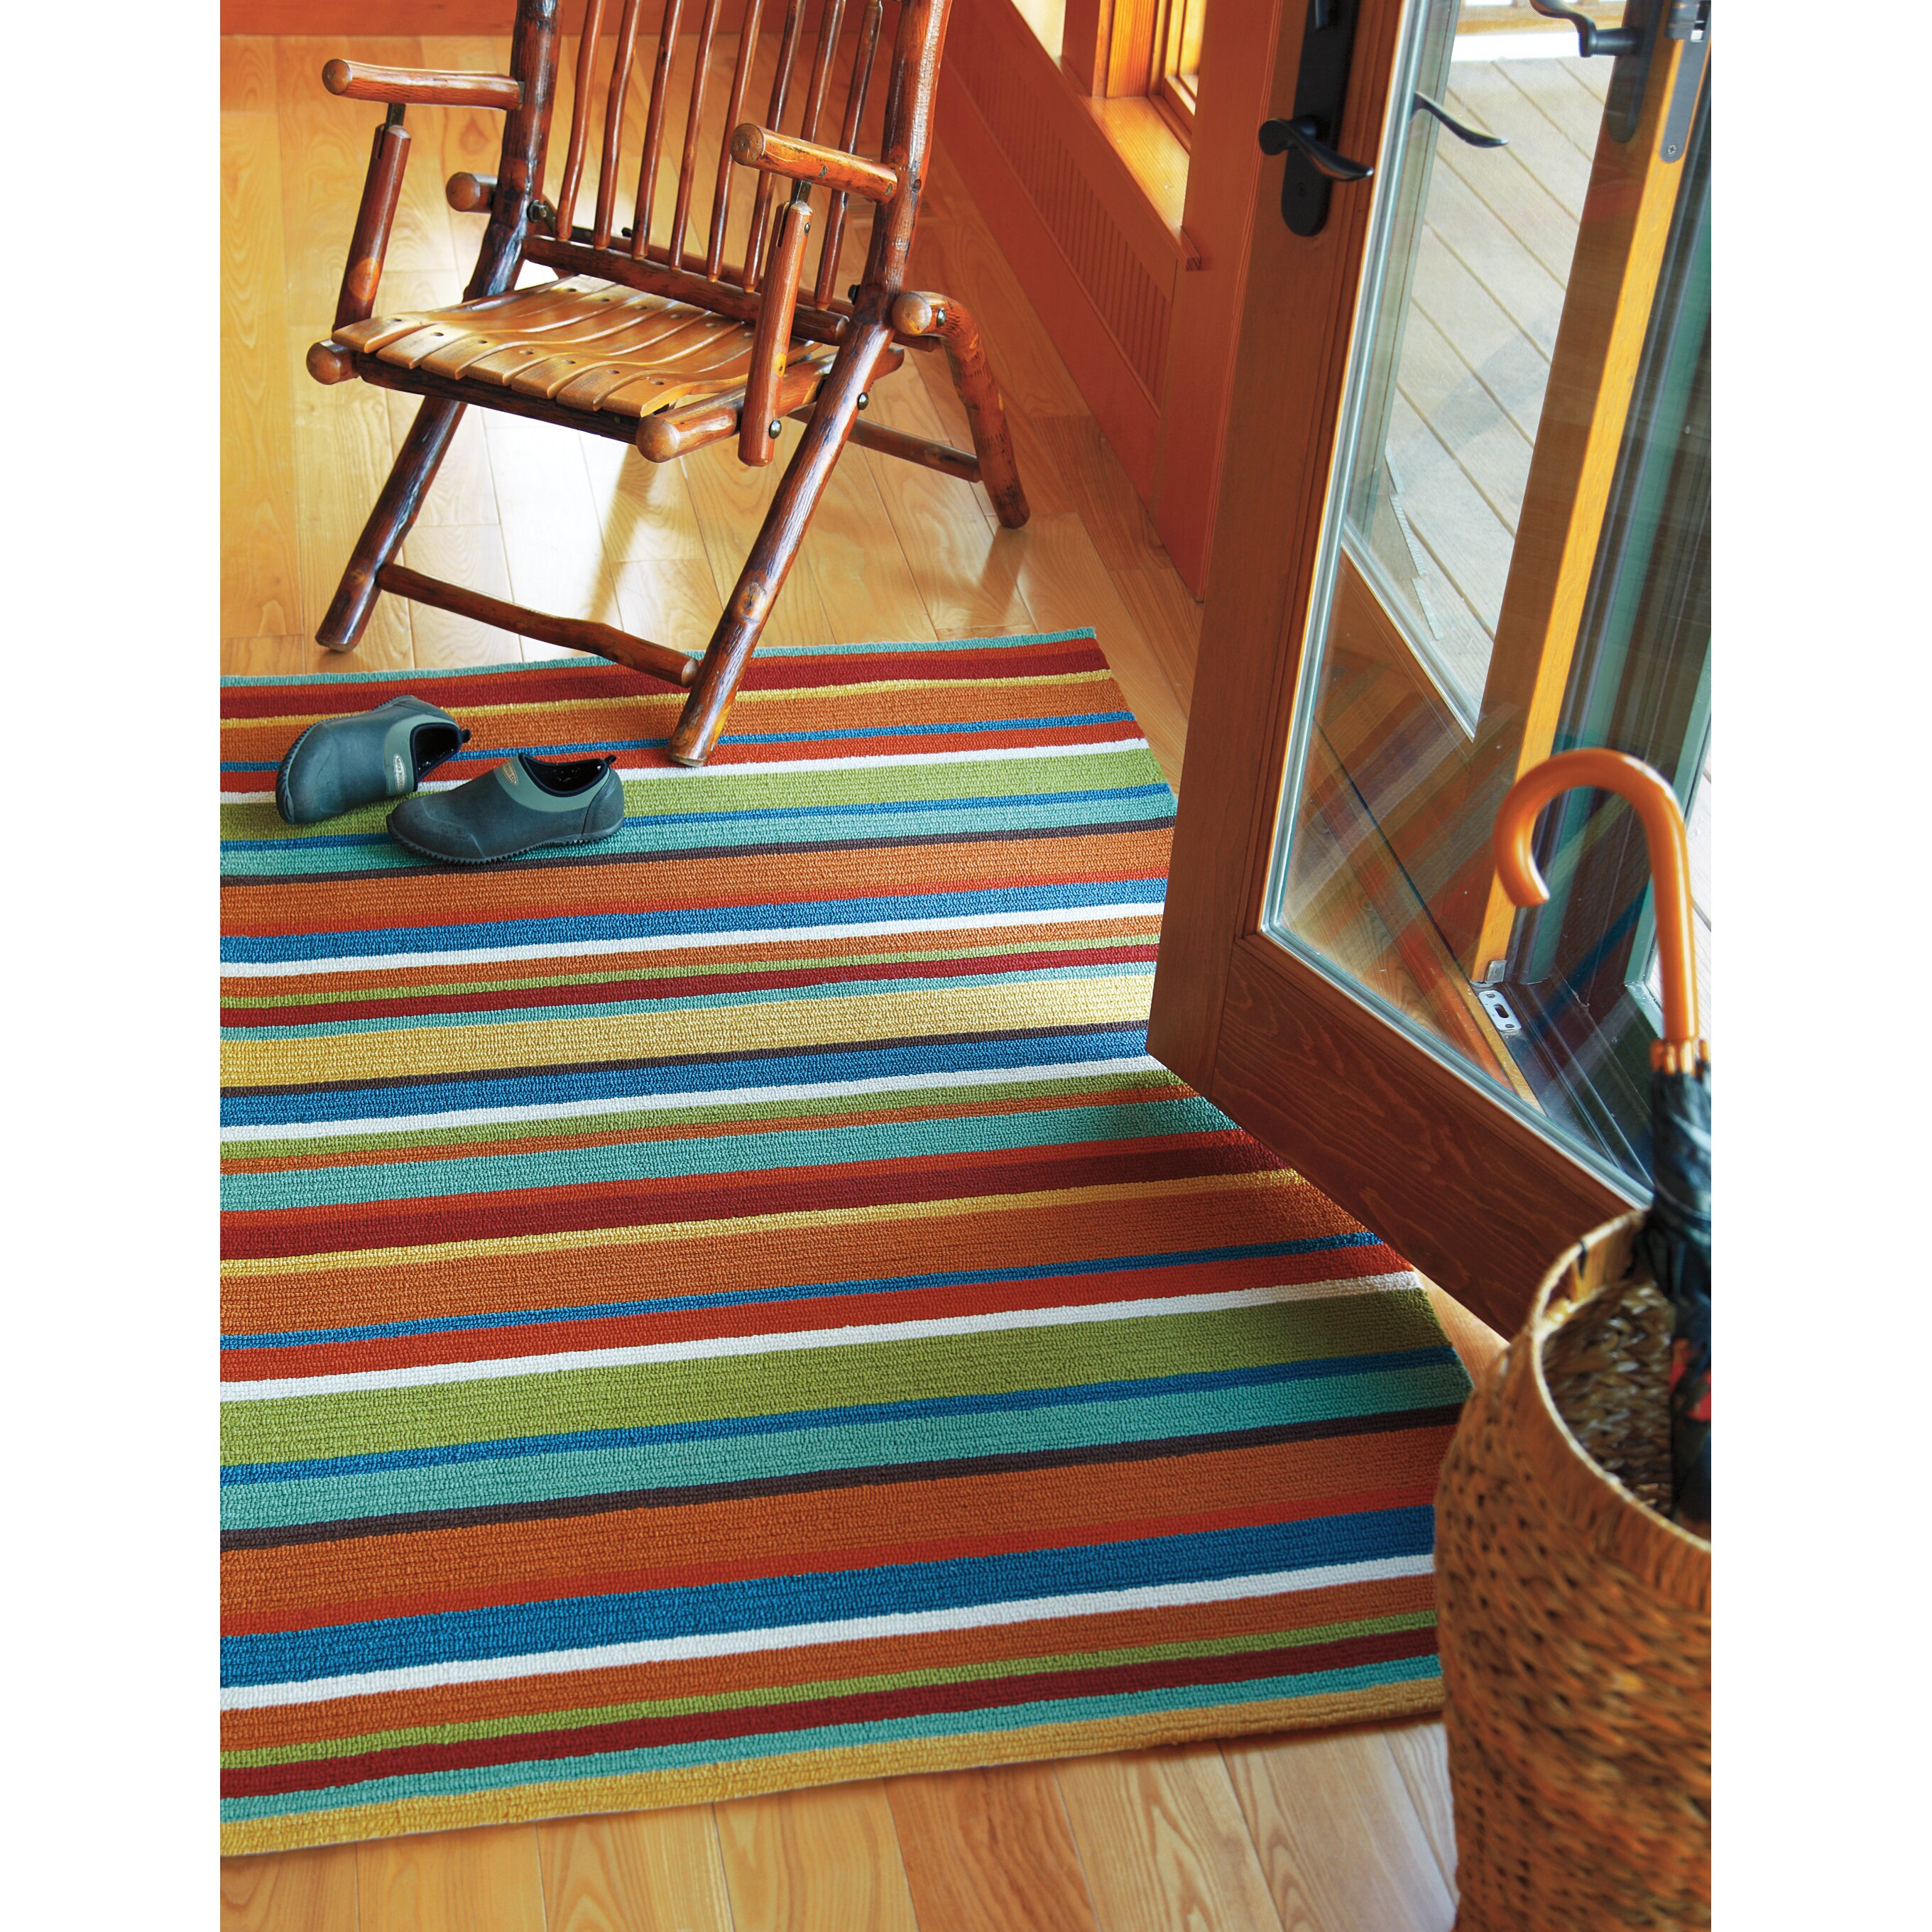 cabana stripe rug company c cabana orange stripe area rug amp reviews wayfair 1900